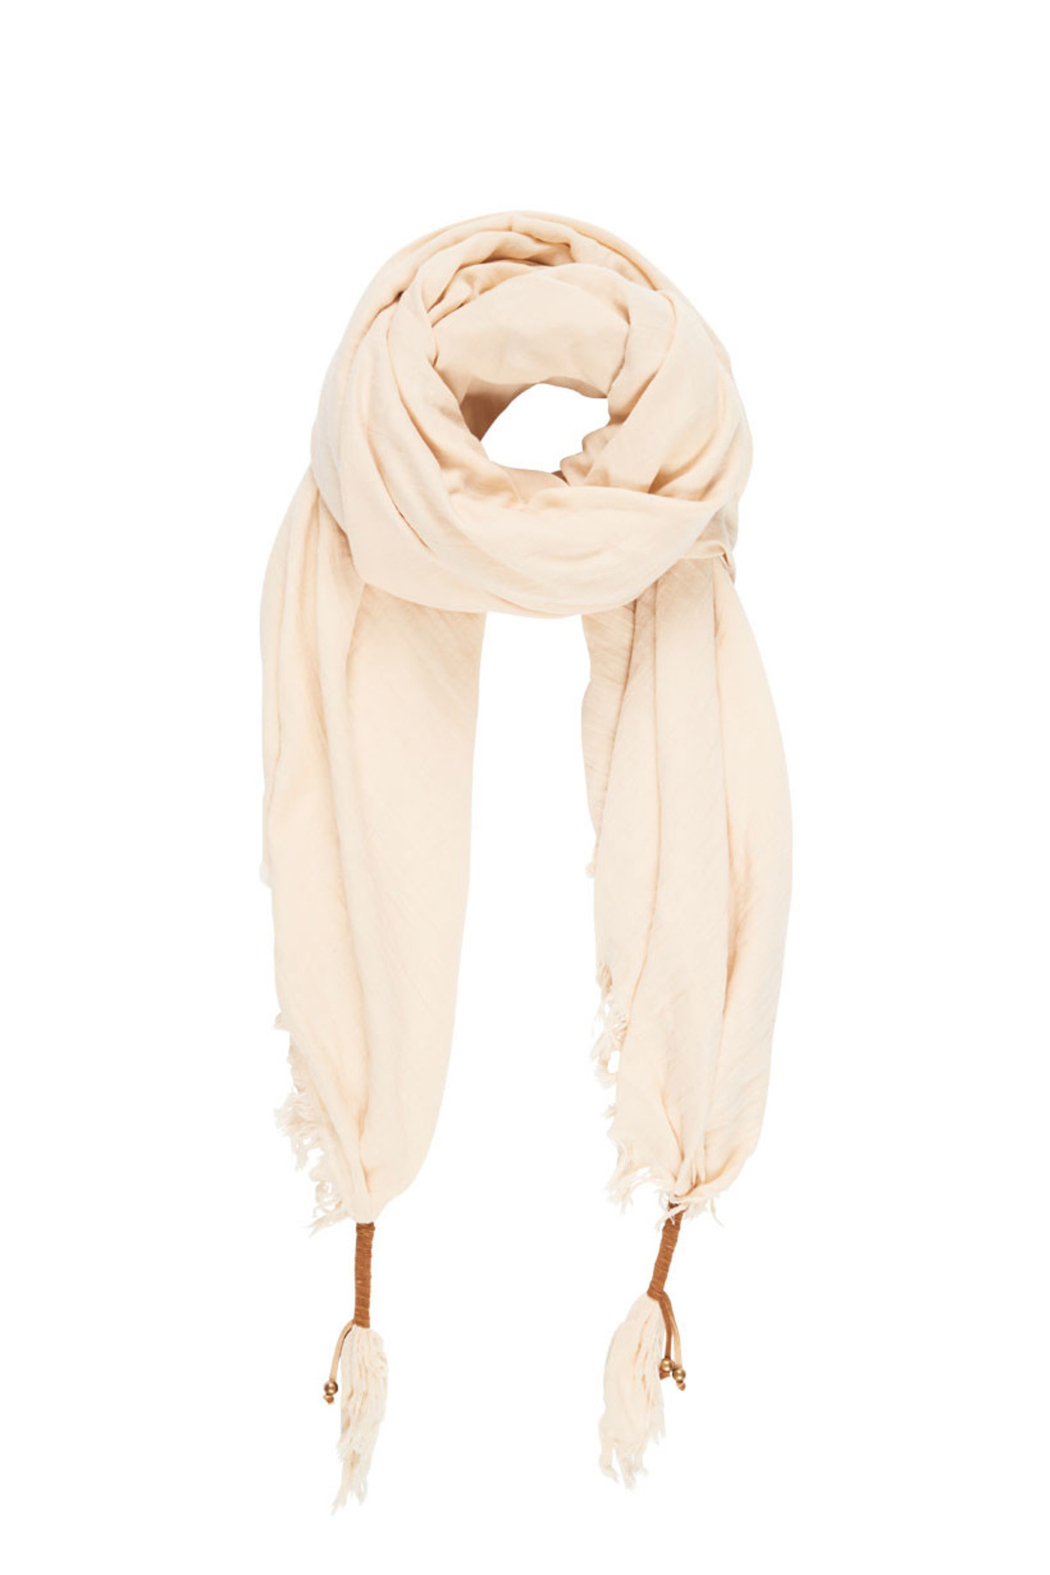 Spell & the Gypsy Collective Hanalei Travel Scarf in Sand - Front Full Image